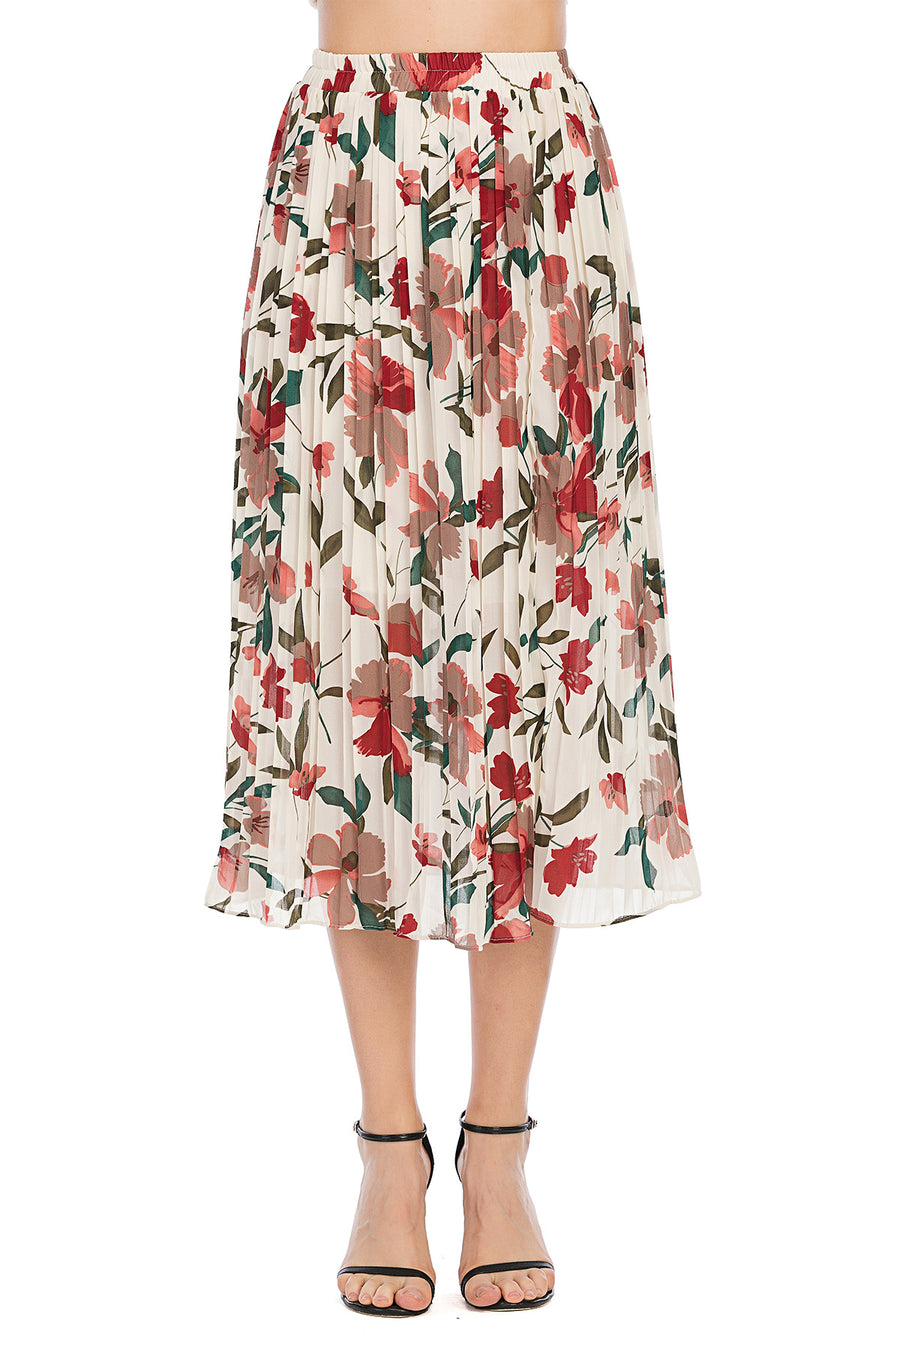 Mantra Pakistan floral skirt | Western Wear